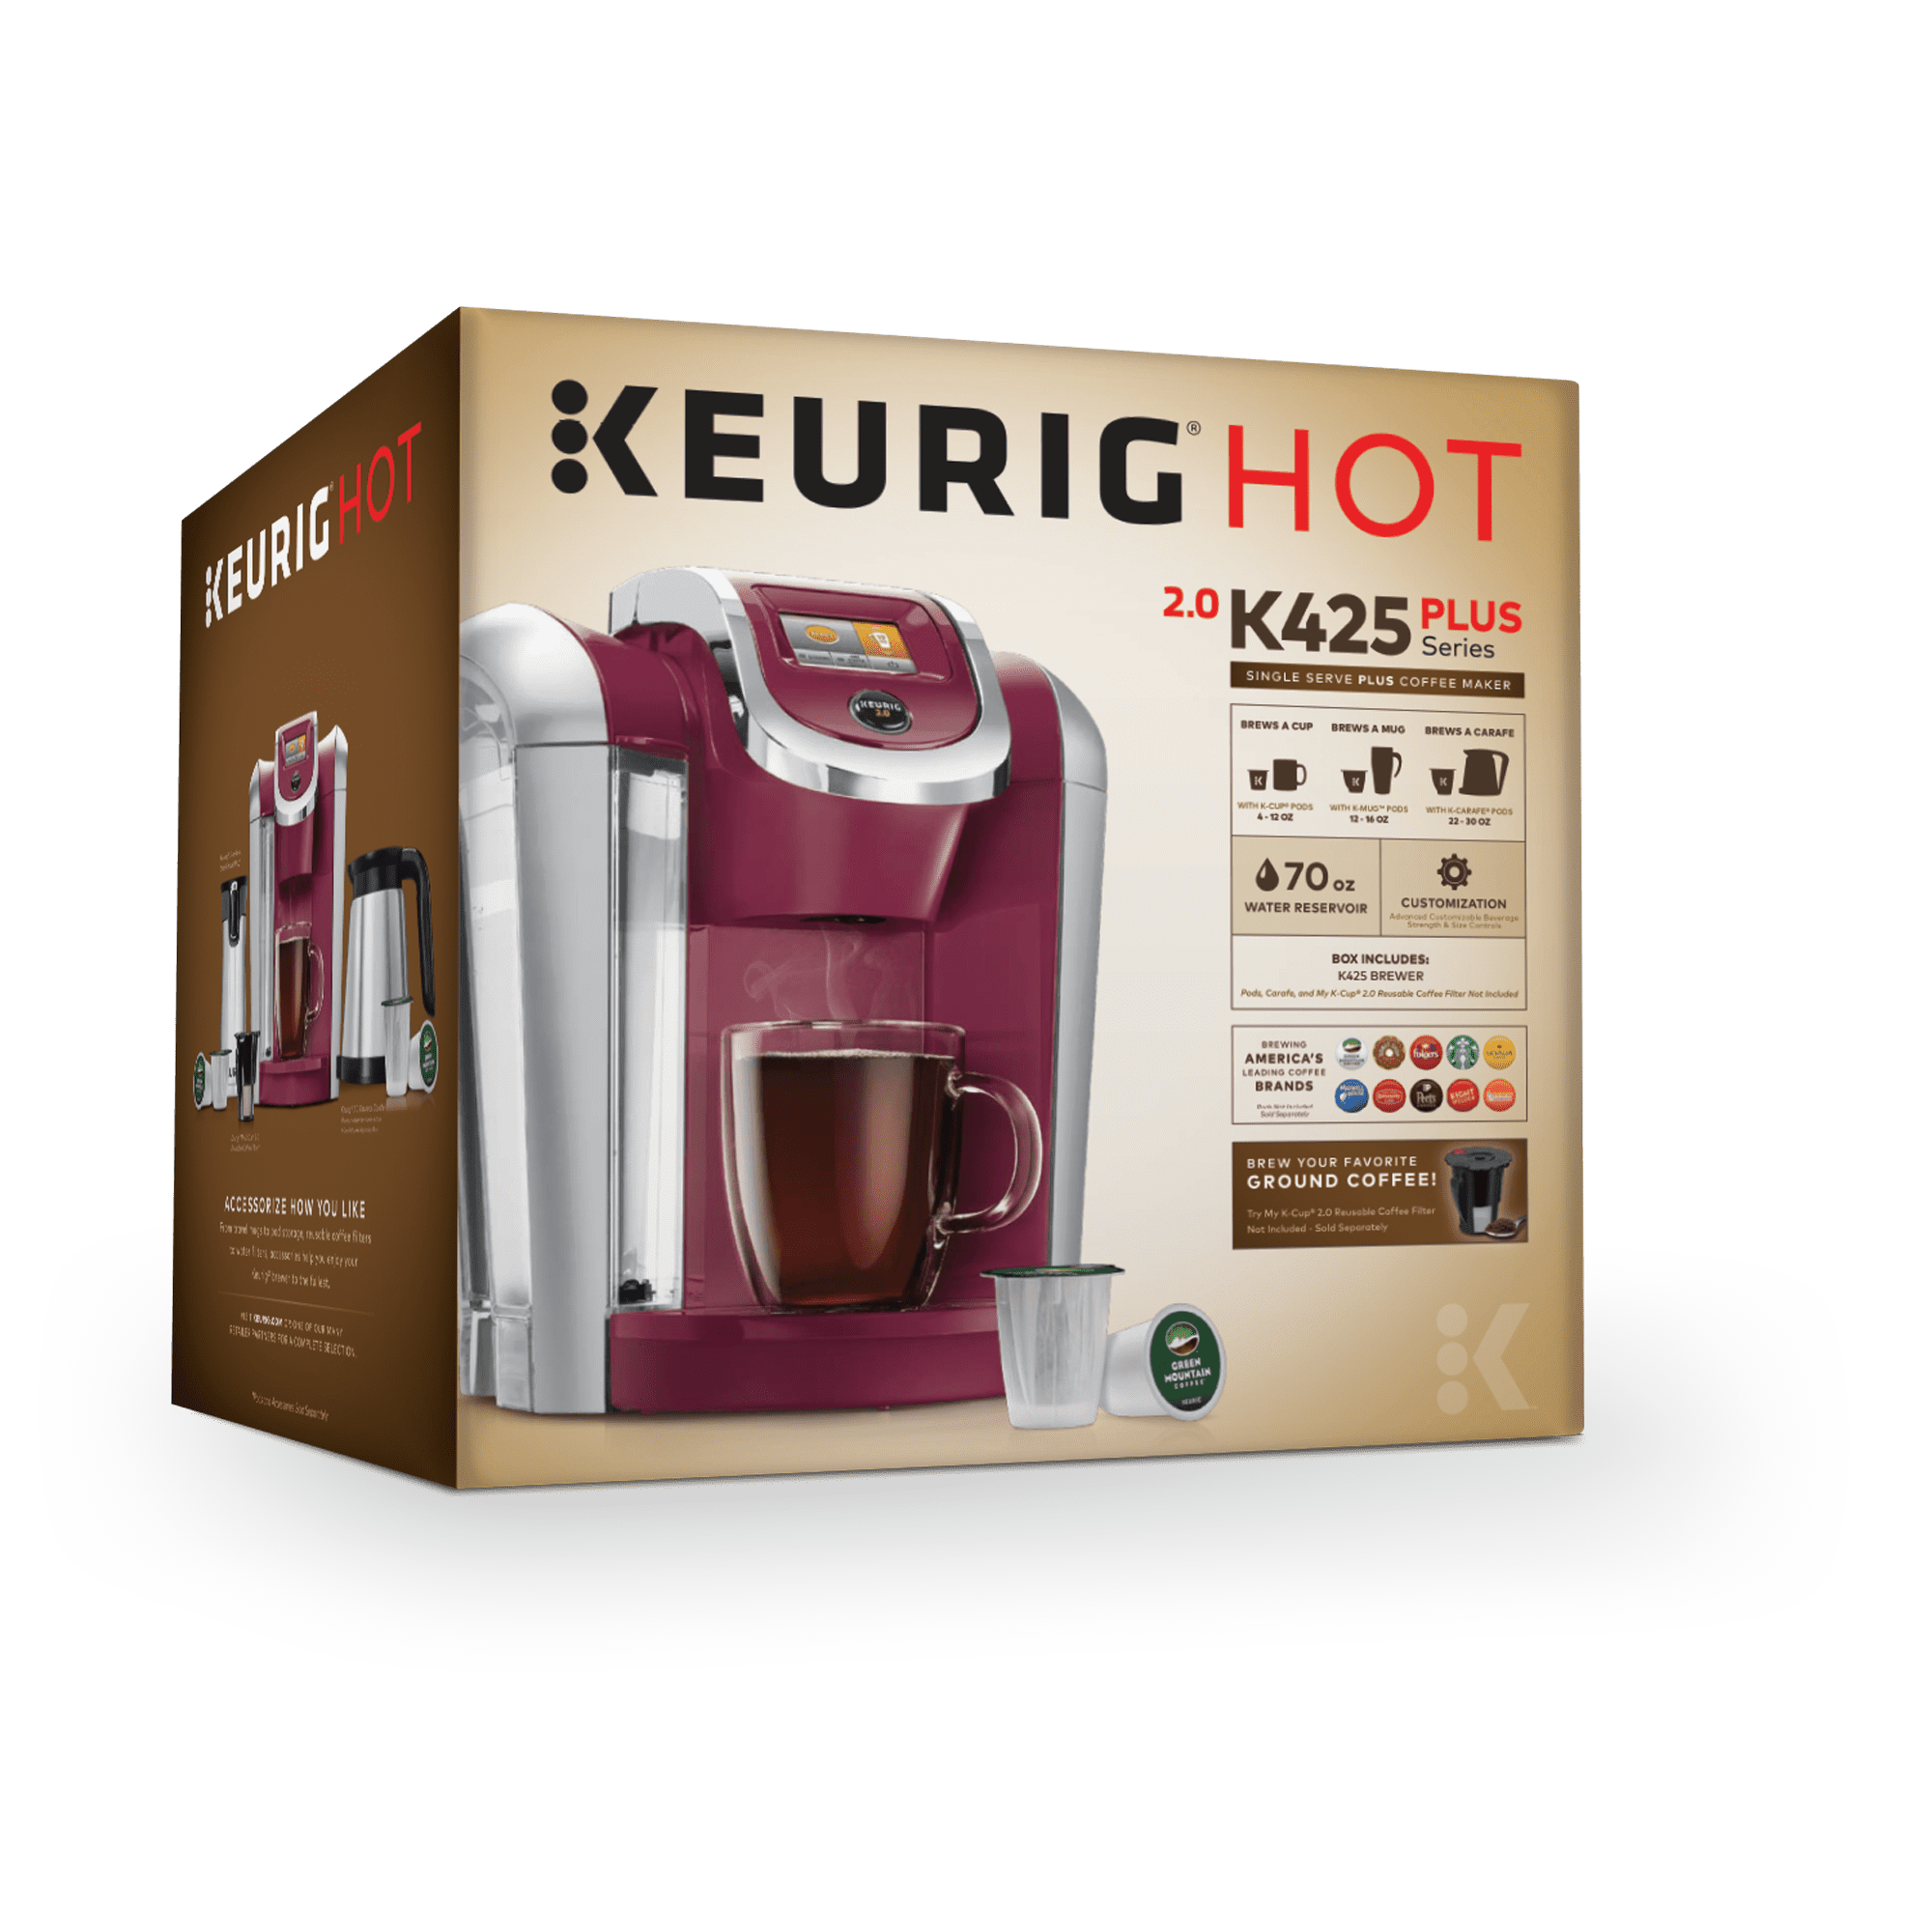 Keurig K425 Single Serve K Cup Pod Coffee Maker With 12oz Brew Size Strength Control And Temperature Programmable Black